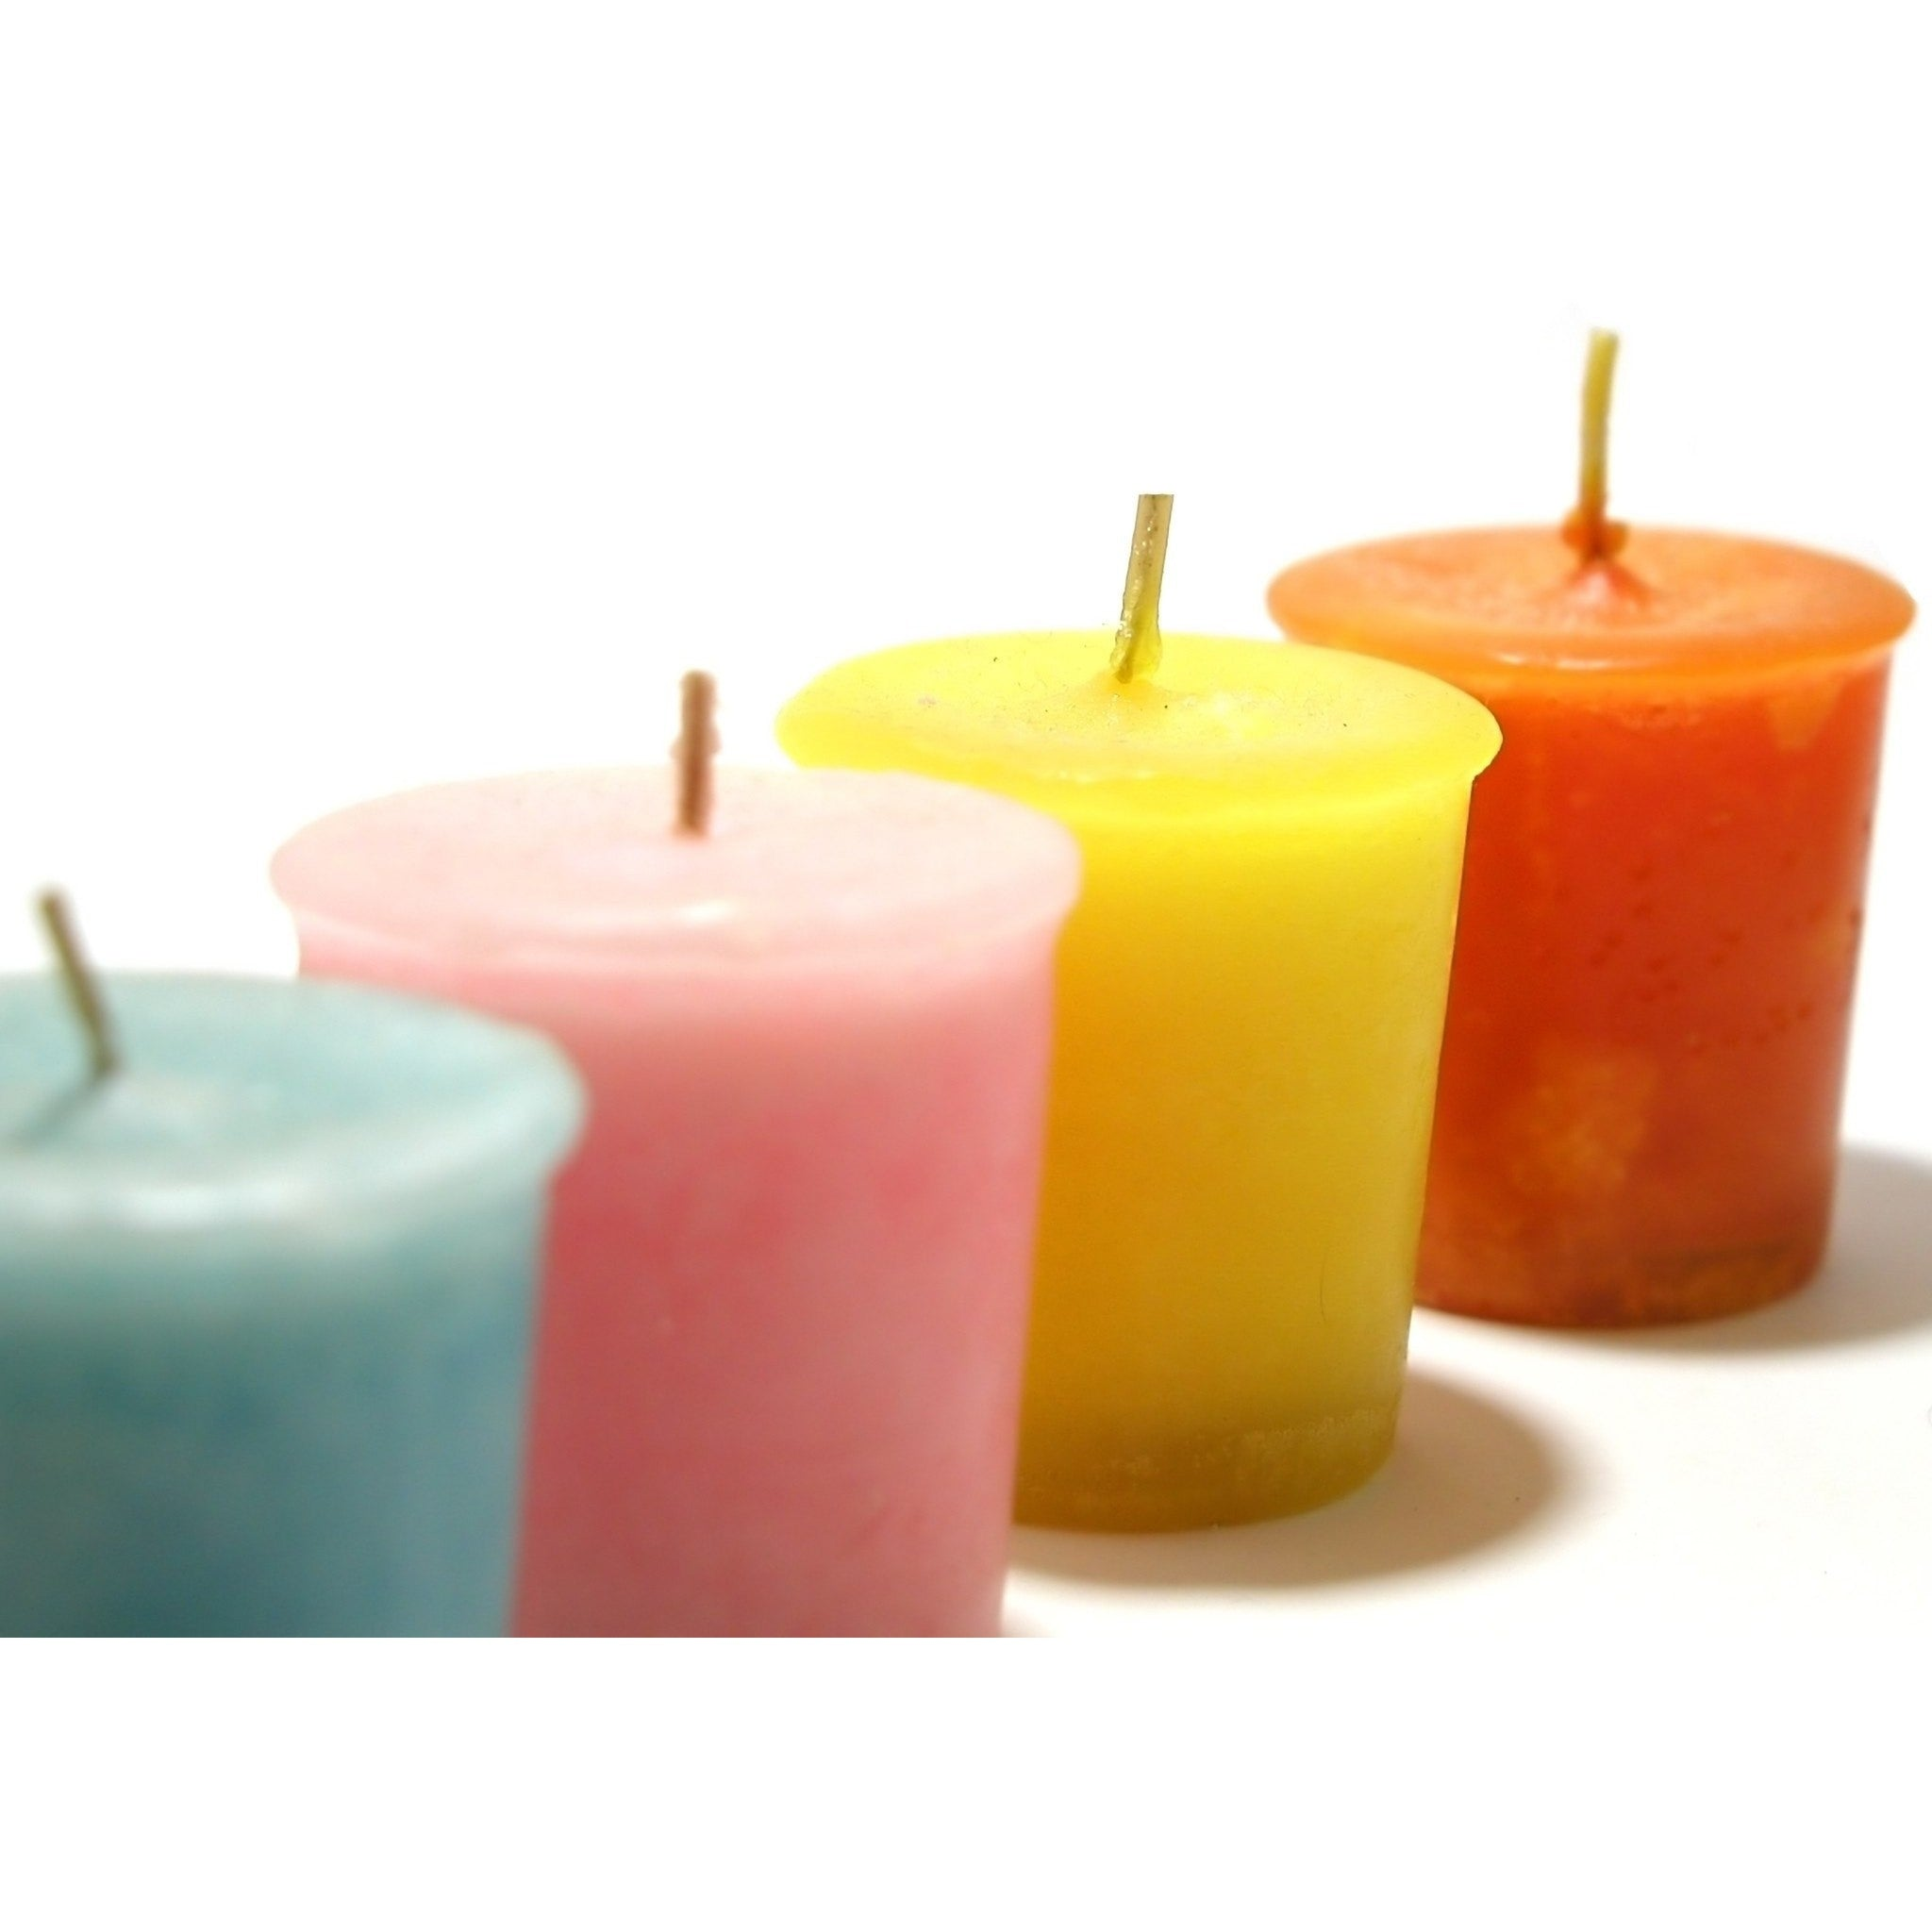 Raspberry N' Vanilla Natural Hand Poured Soy Candles - Votive-Single - Bella-Mia Naturals All Natural Soy Candles & Lip Balms - 9